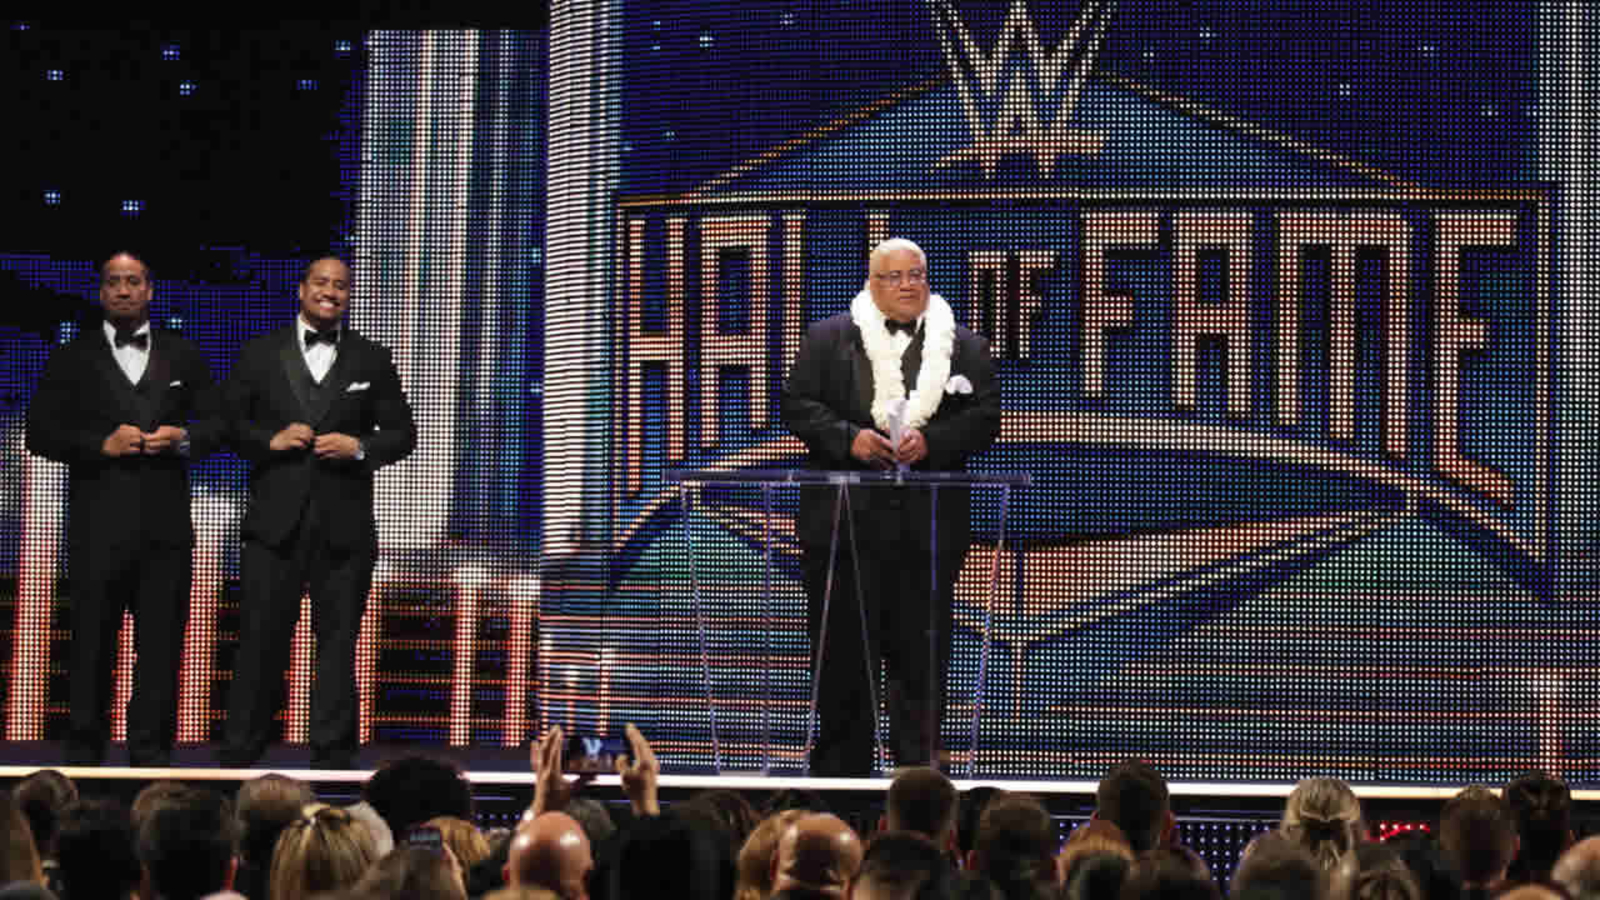 PHOTOS: WWE inducts wrestling superstars into Hall of Fame ...